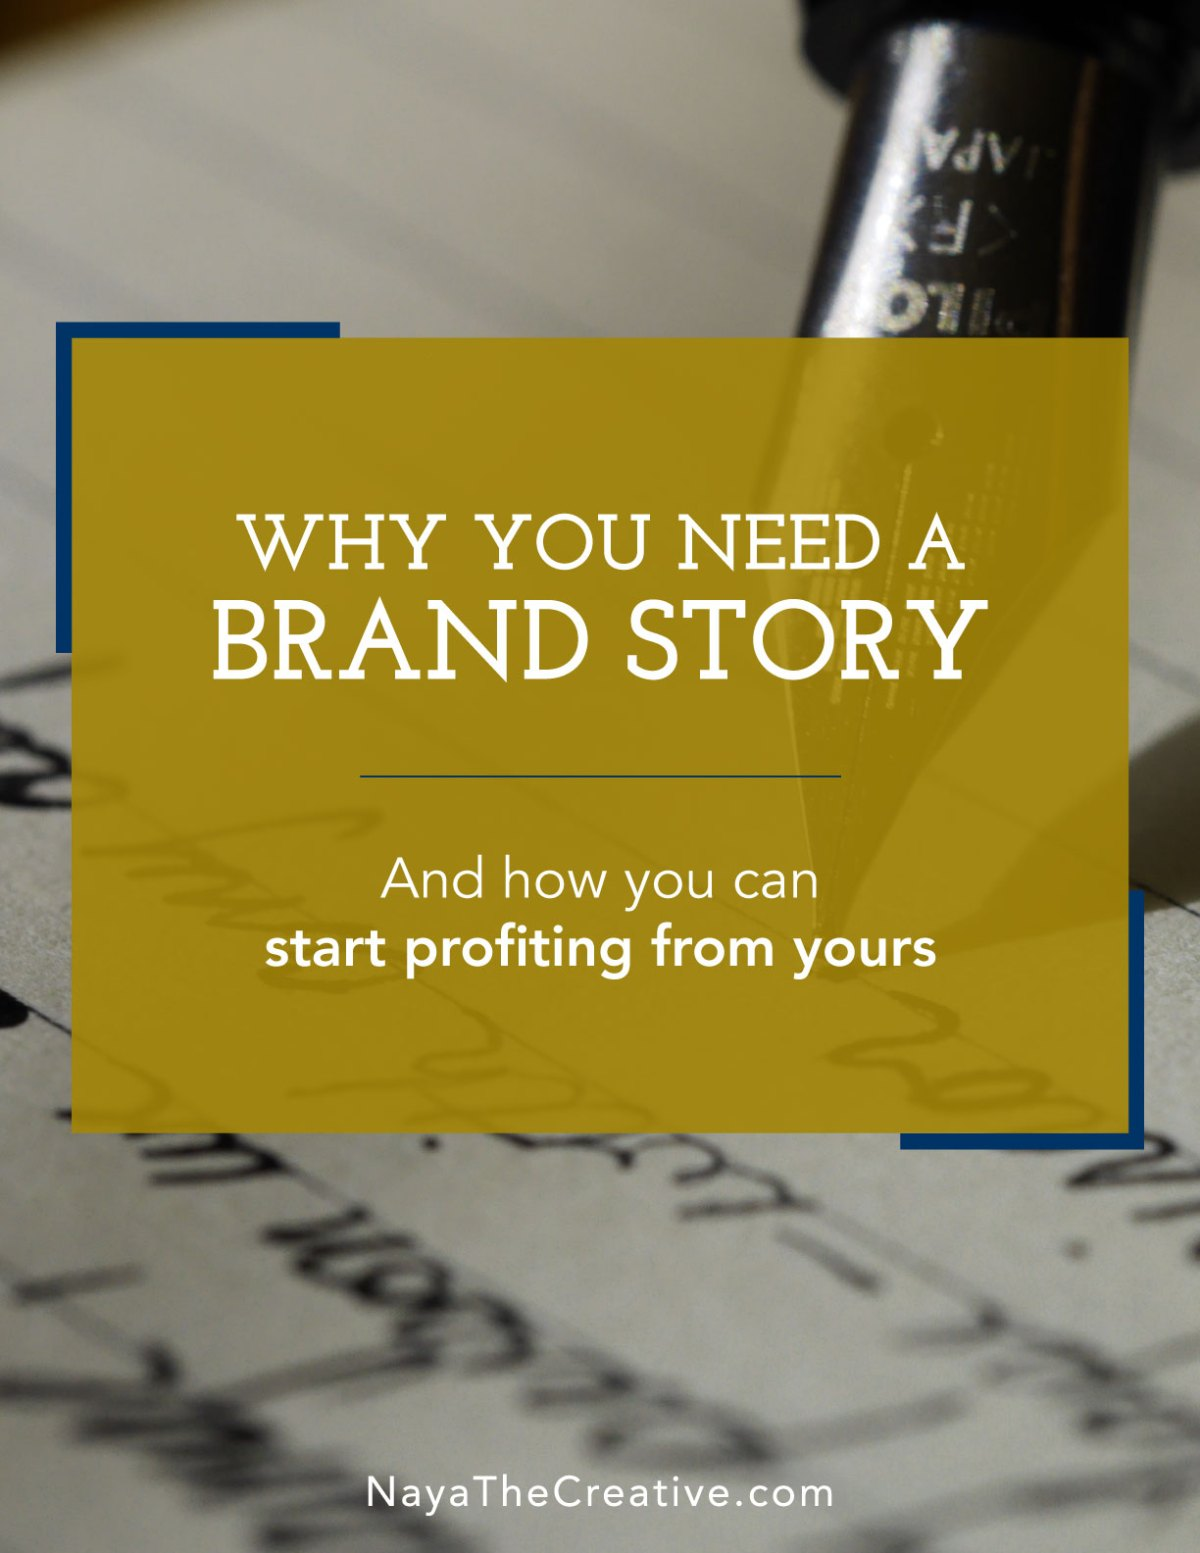 Why you need a brand story